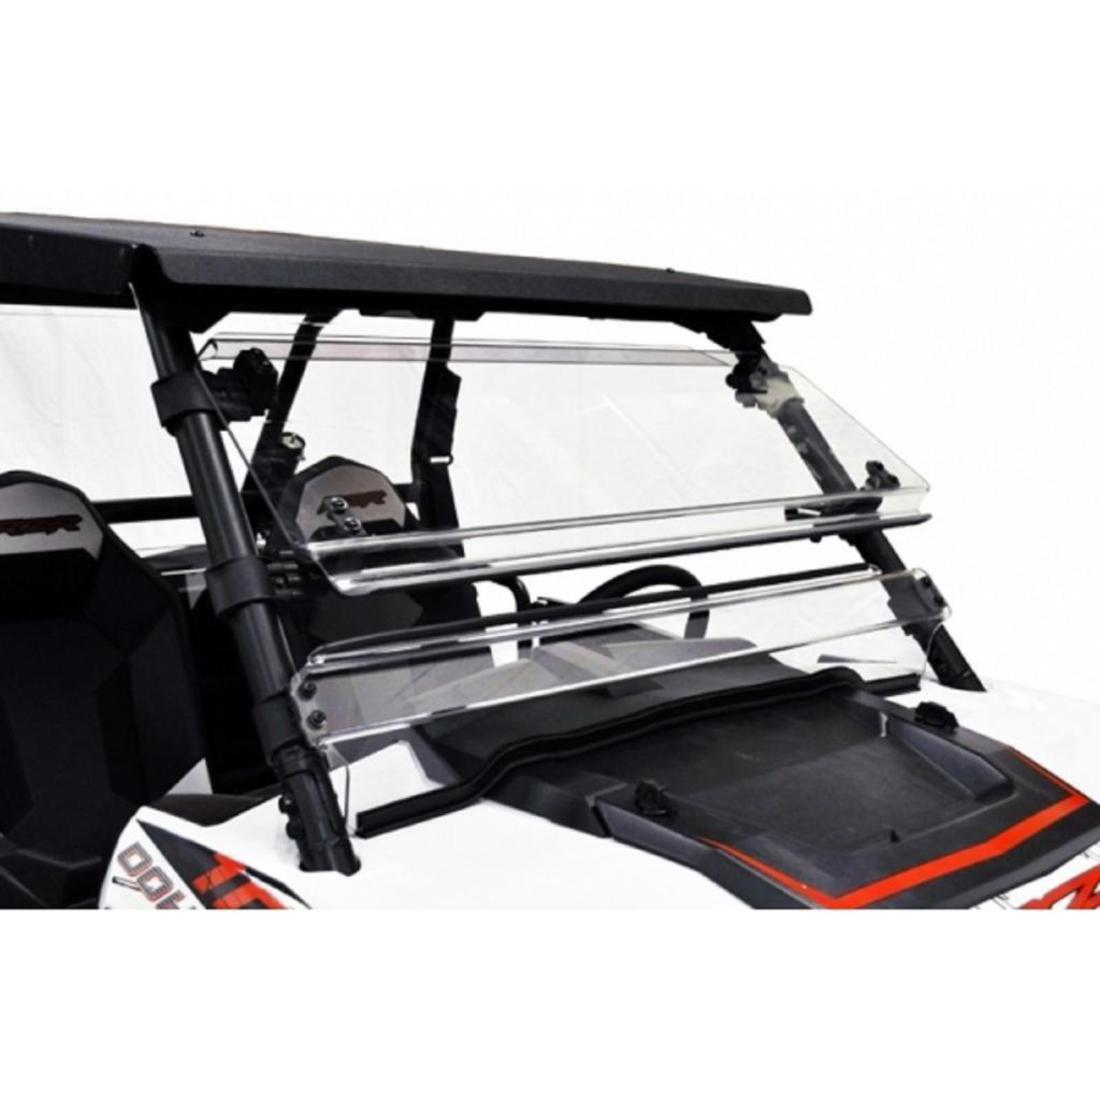 Polaris RZR 900 / 1000 Full Tilting Scratch Resistant Windshield